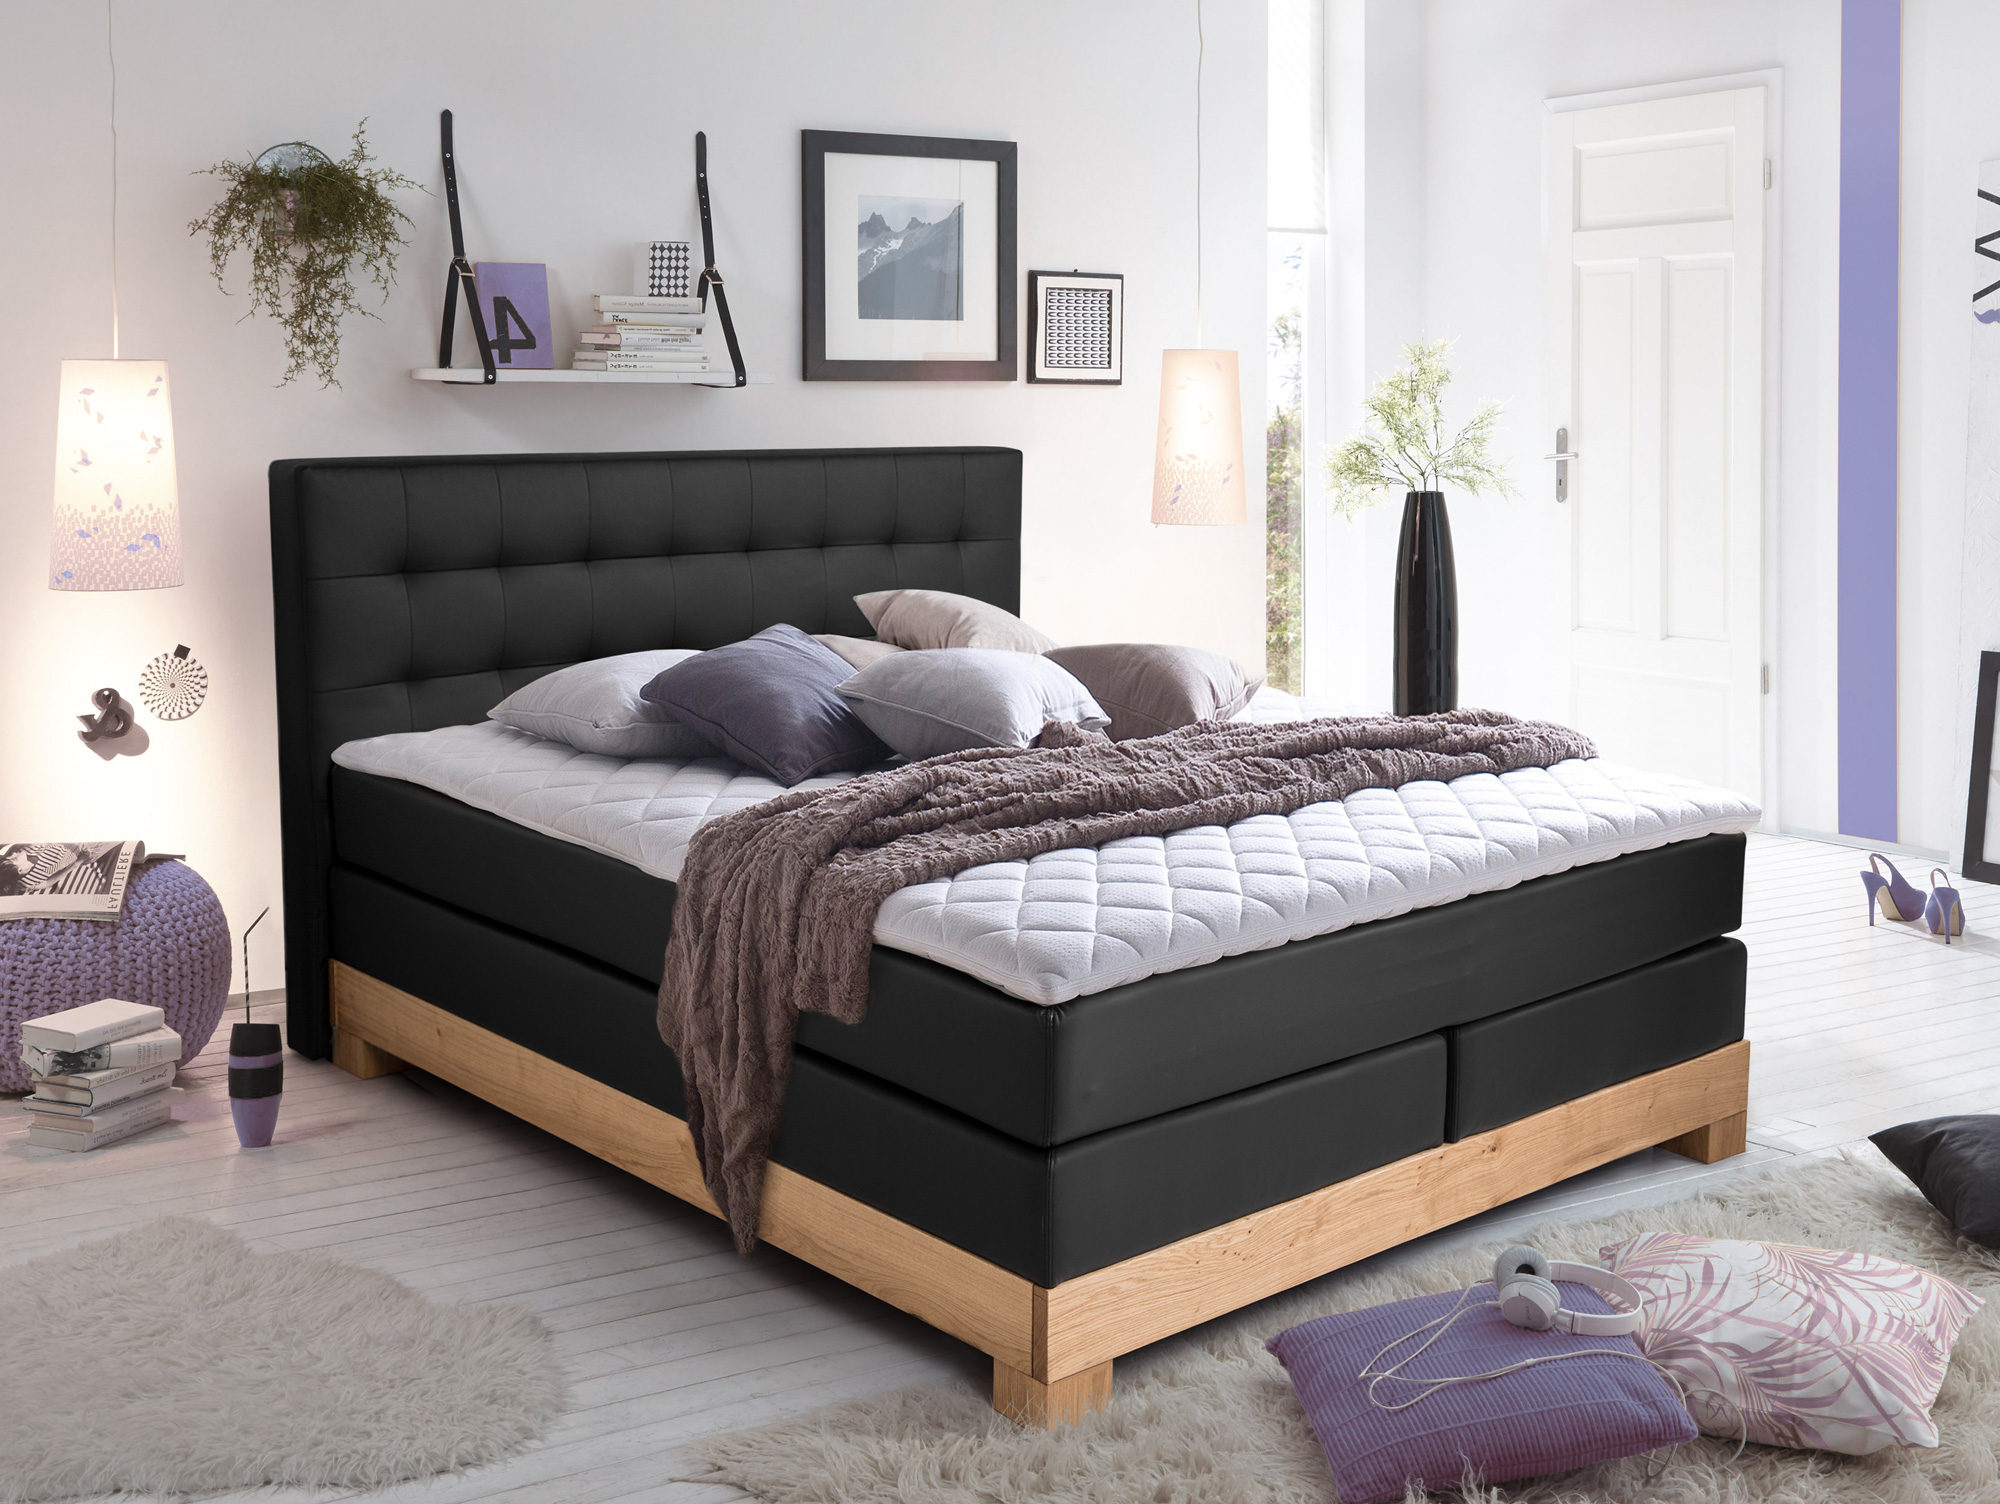 arche boxspringbett mit massivholzrahmen 160 x 200 cm schwarz buche h rtegrad 2. Black Bedroom Furniture Sets. Home Design Ideas